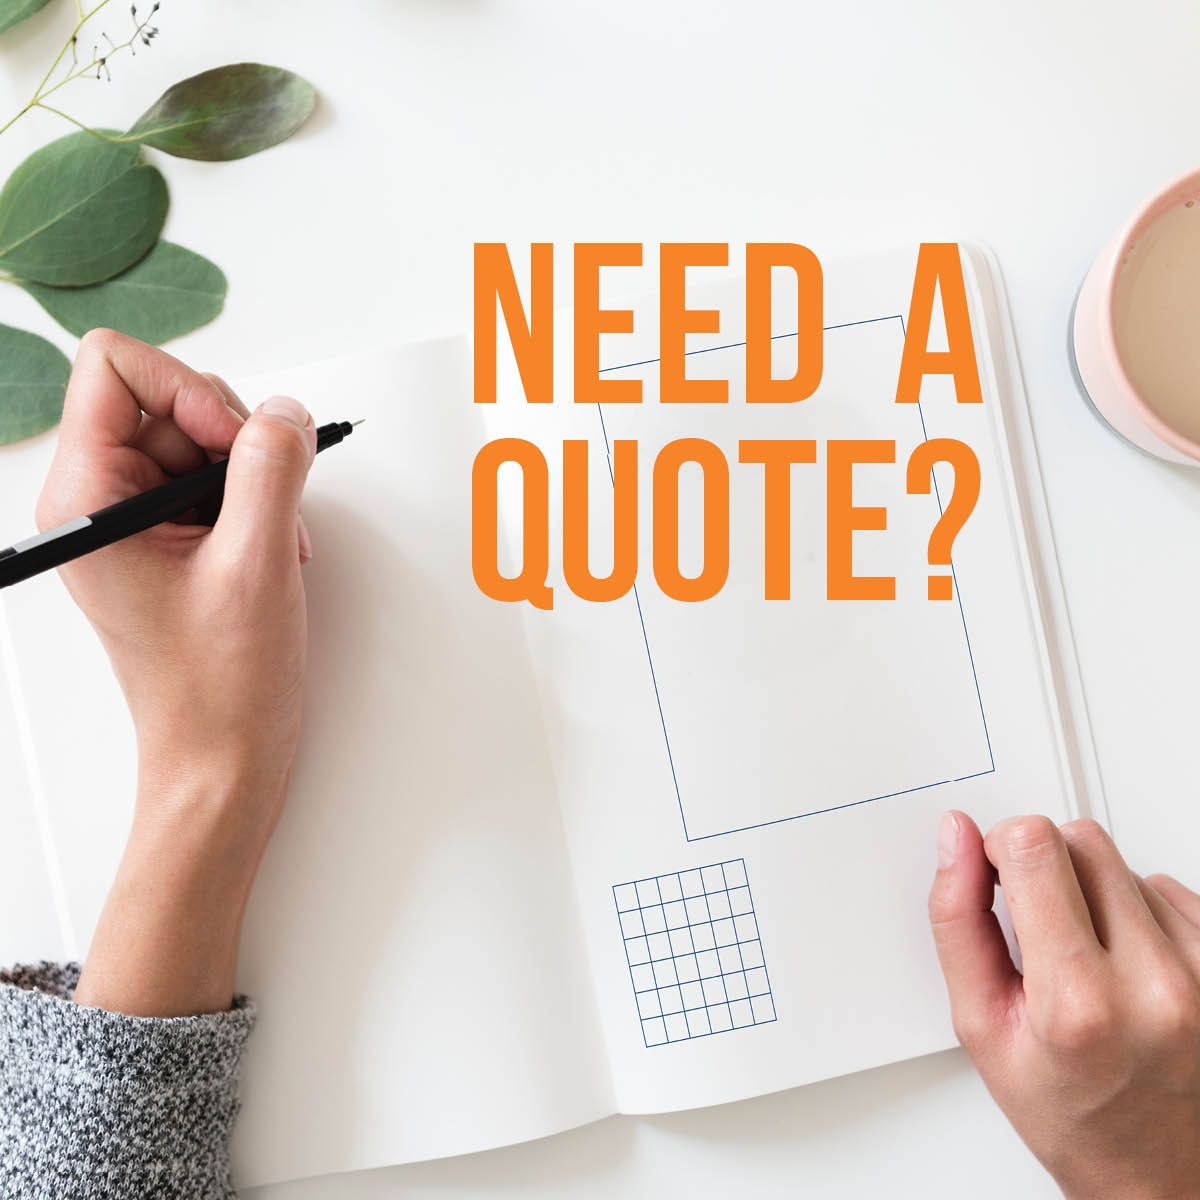 Need A Quote?